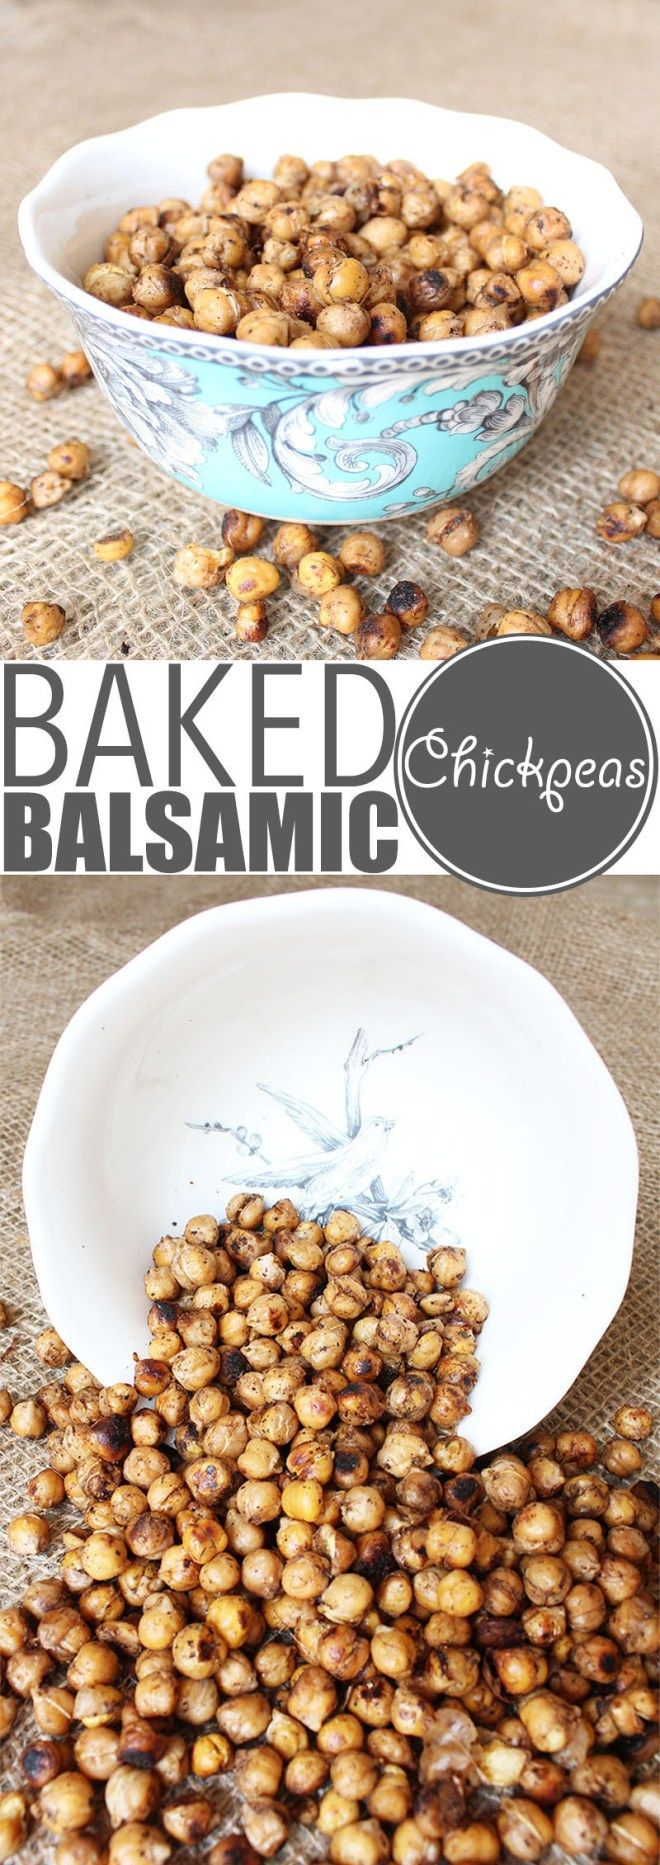 "Baked Chickpeas | Chickpeas are crazy versatile and so is my ""world famous"" baked chickpeas recipe. Eat them warm out of the oven, as a cold snack, with salad, pasta or rice! Visit http://ofhousesandtrees.com for posts on architecture, interior design,  DIY projects, sustainability, crafts, gardening, home decor and healthy eating."